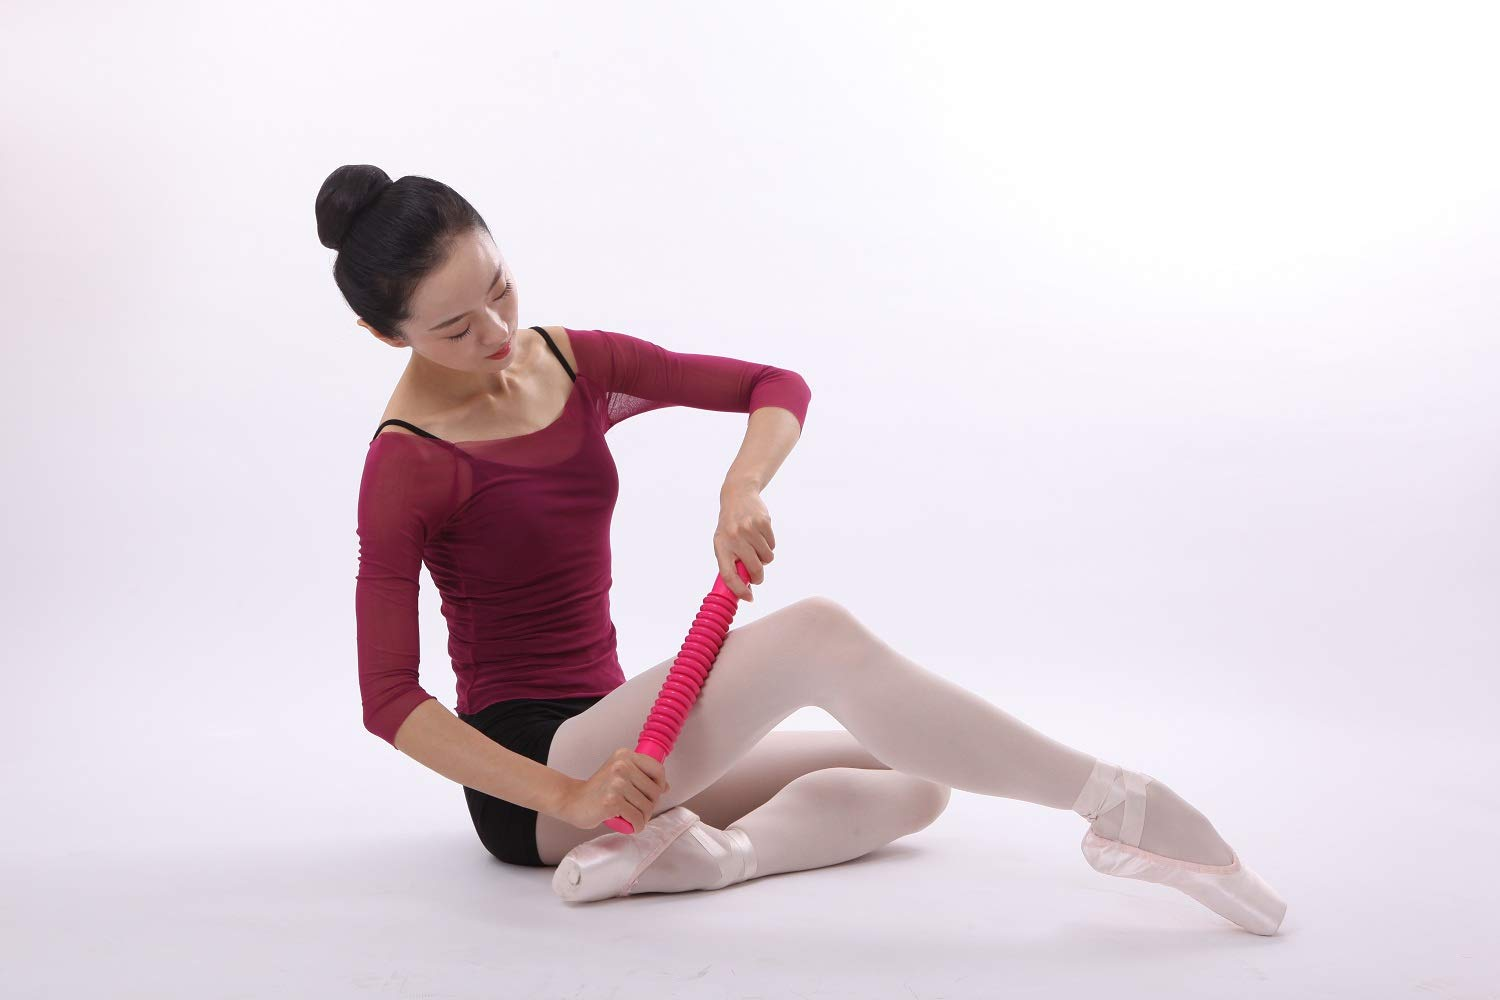 Ballet and Gymnastics Foot Stretcher,Deep Tissue Massage Roller Foot Massager Trigger Point Therapy Arch Foot Stretcher for Dancers Adult and Kids